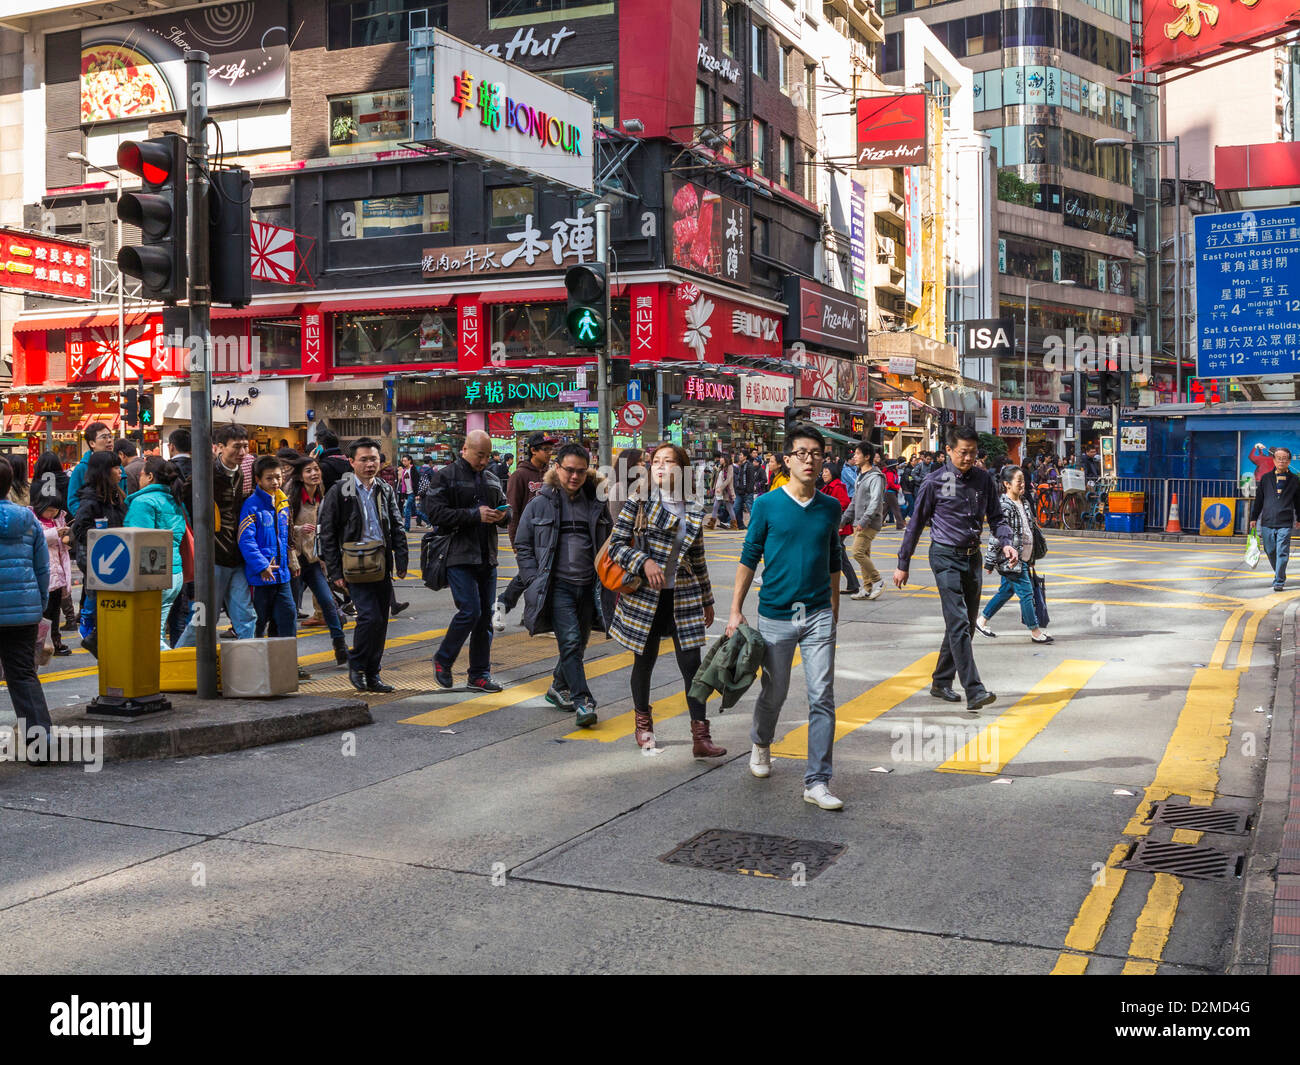 Street scene in Hong Kong - in the Causeway Bay area crowded with people on the streets - Stock Image